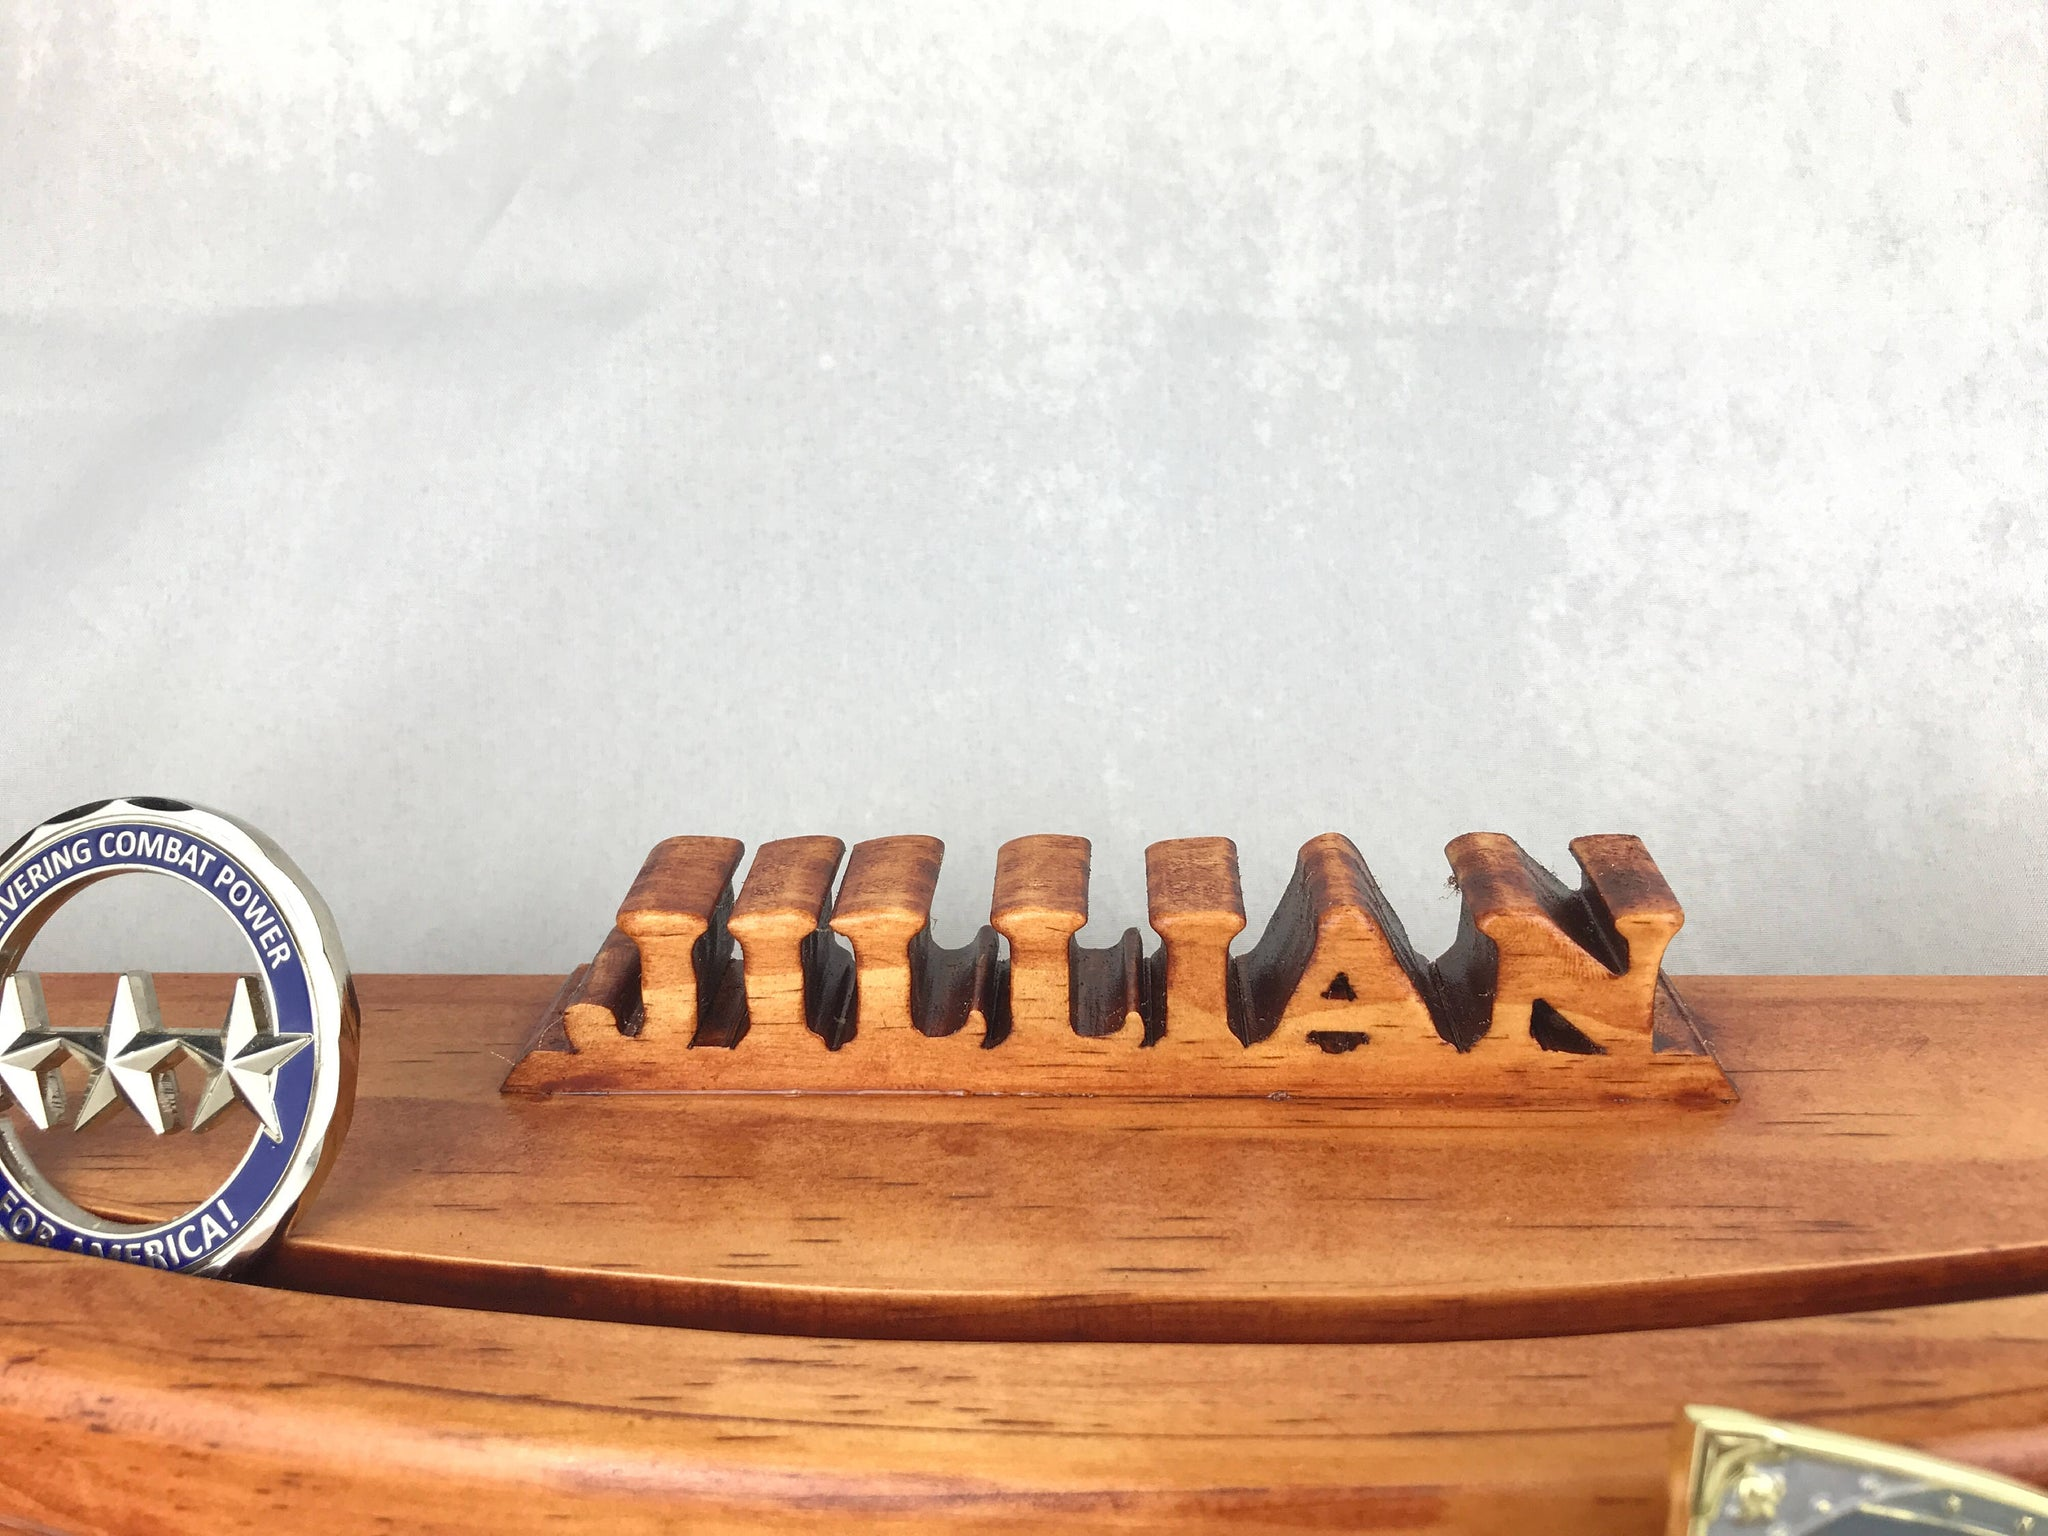 Military Coin Holder - Coin Holder - Challenge Coin Display